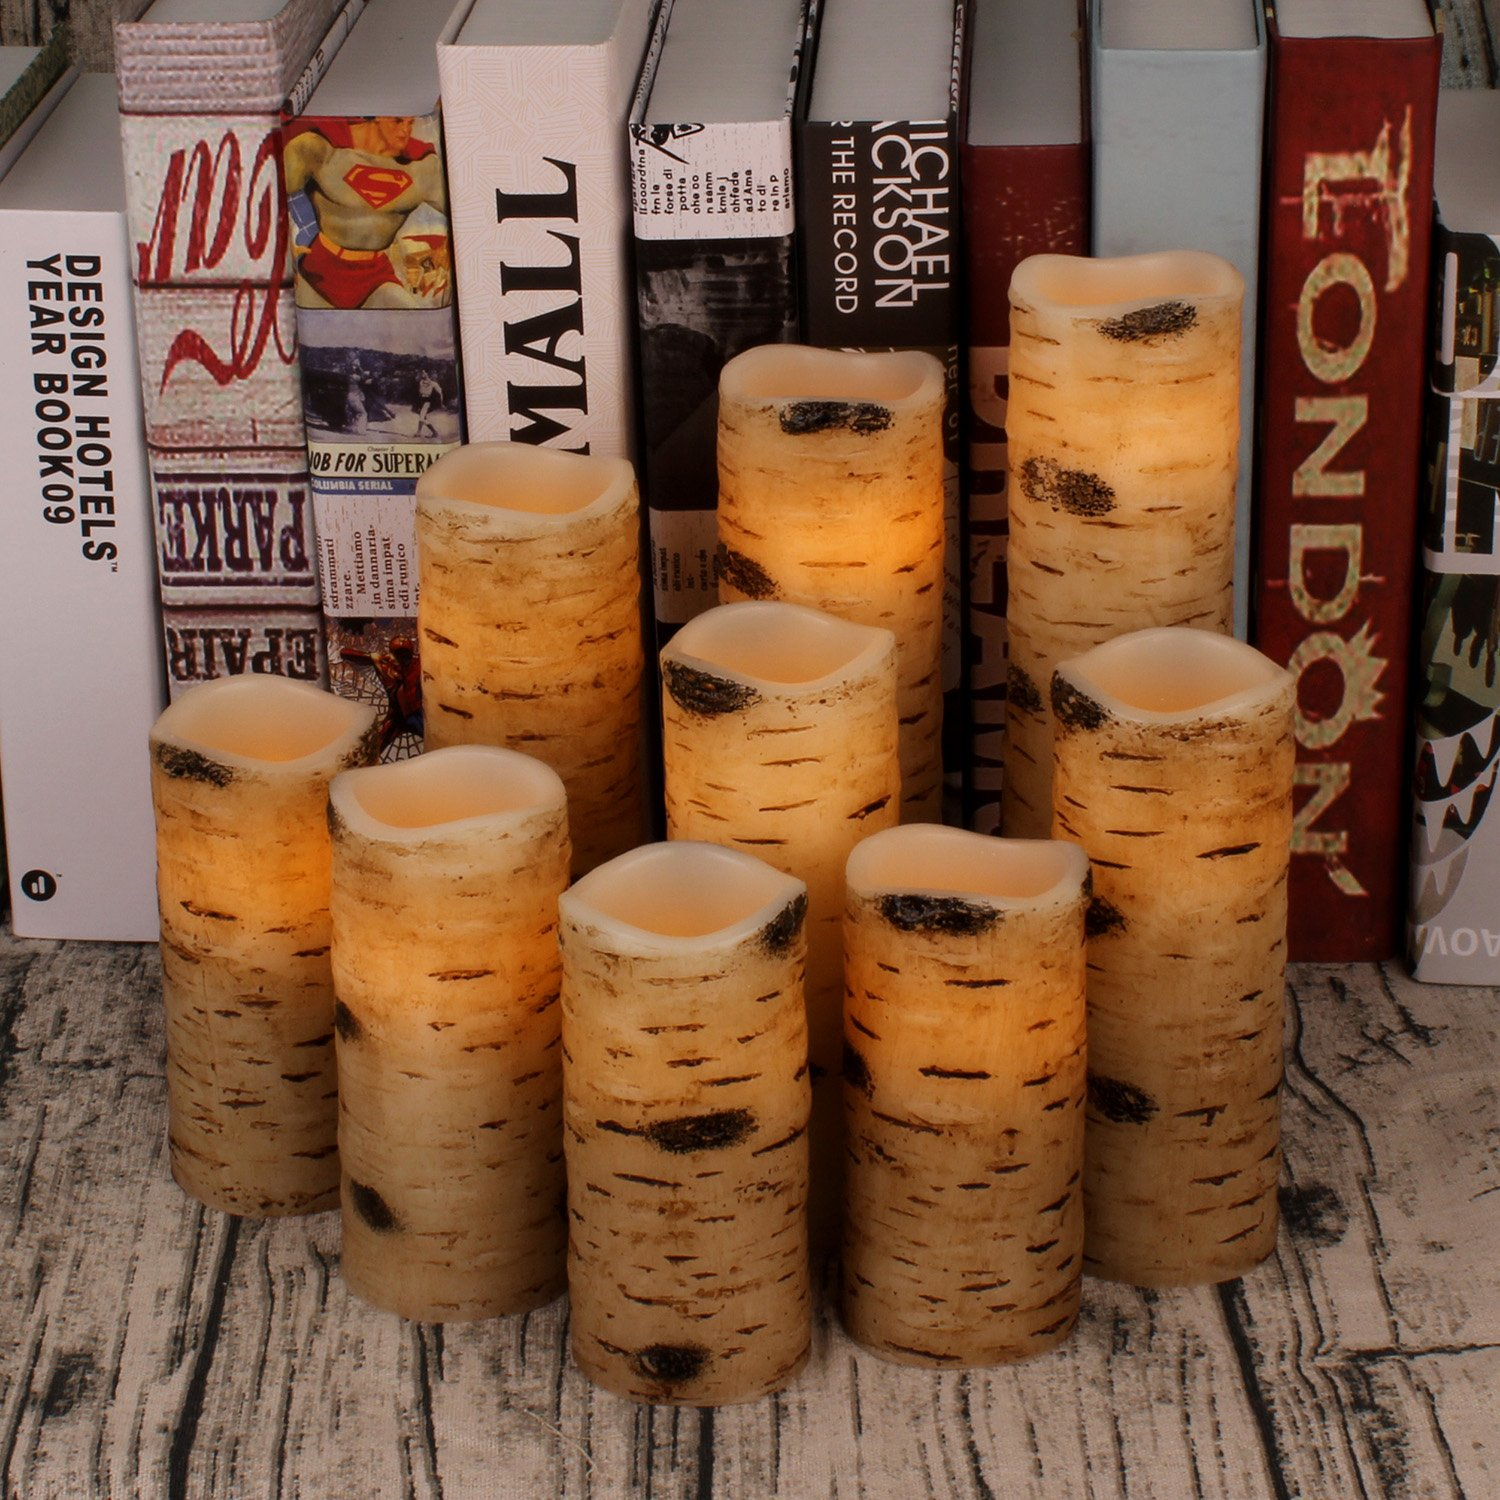 """Antizer Flameless Candles Battery Operated Candles Birch Bark Effect 4"""" 5"""" 6"""" 7"""" 8"""" 9"""" Set of 9 Ivory Real Wax Pillar LED Candles with Real Wax Pillar with 10-Key Remote Control 2/4/6/8 Hours Timer"""